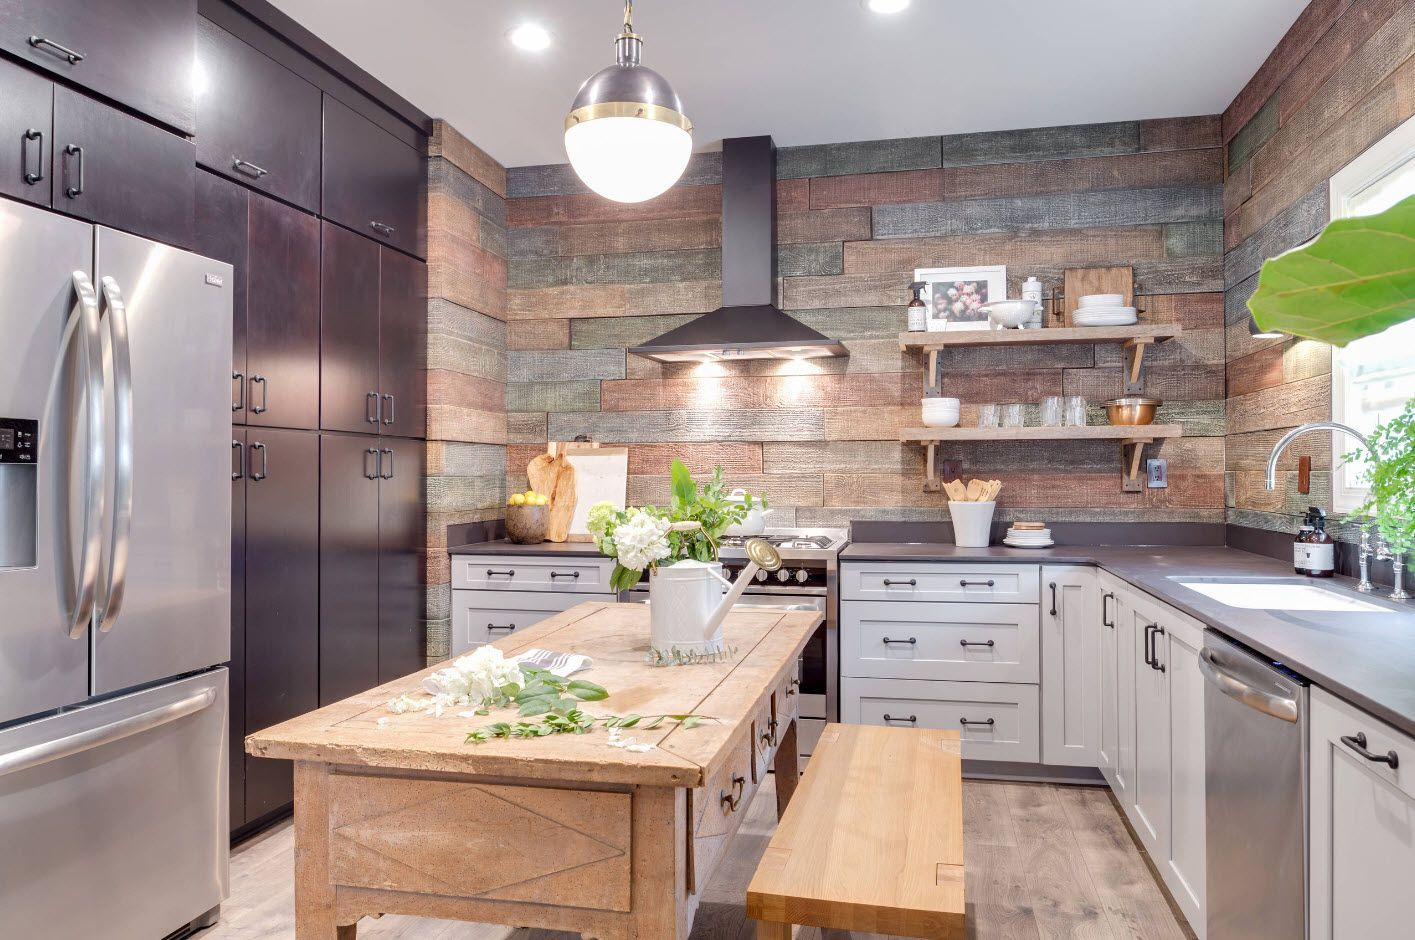 Angular layout of the kitchen with wooden dining group in rustic style